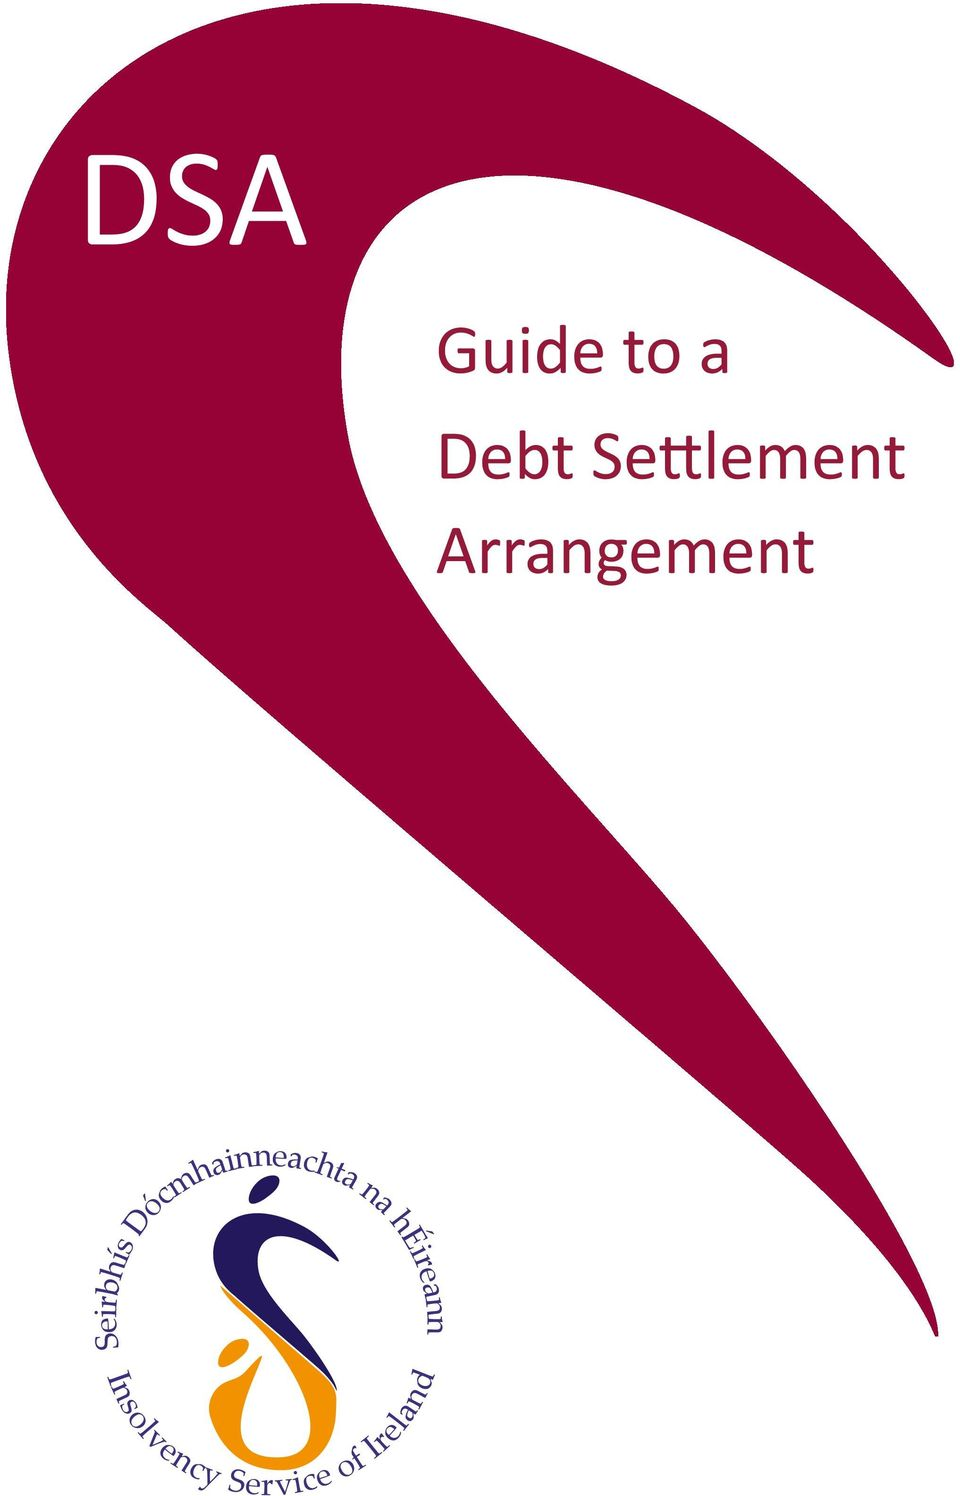 Debt Settlement Arrangement